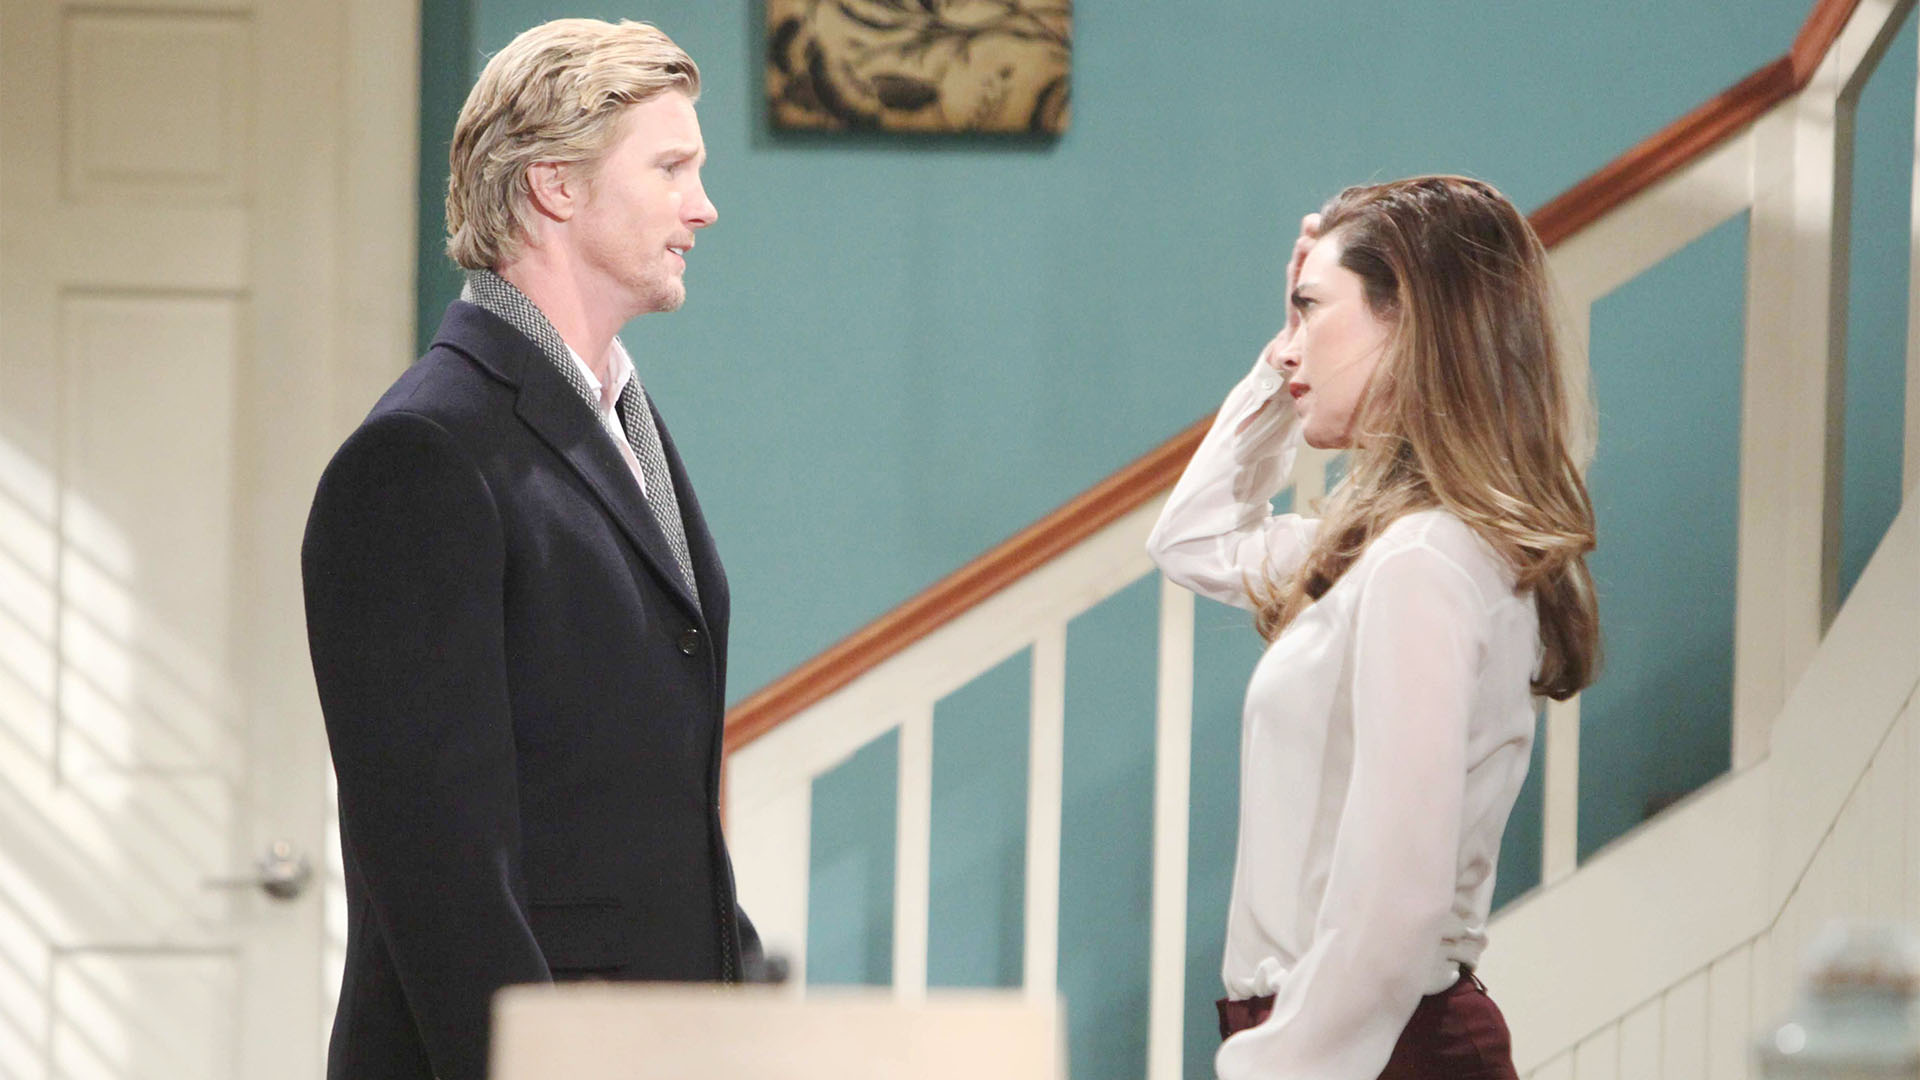 J.T. and Victoria present a united front to Victor.